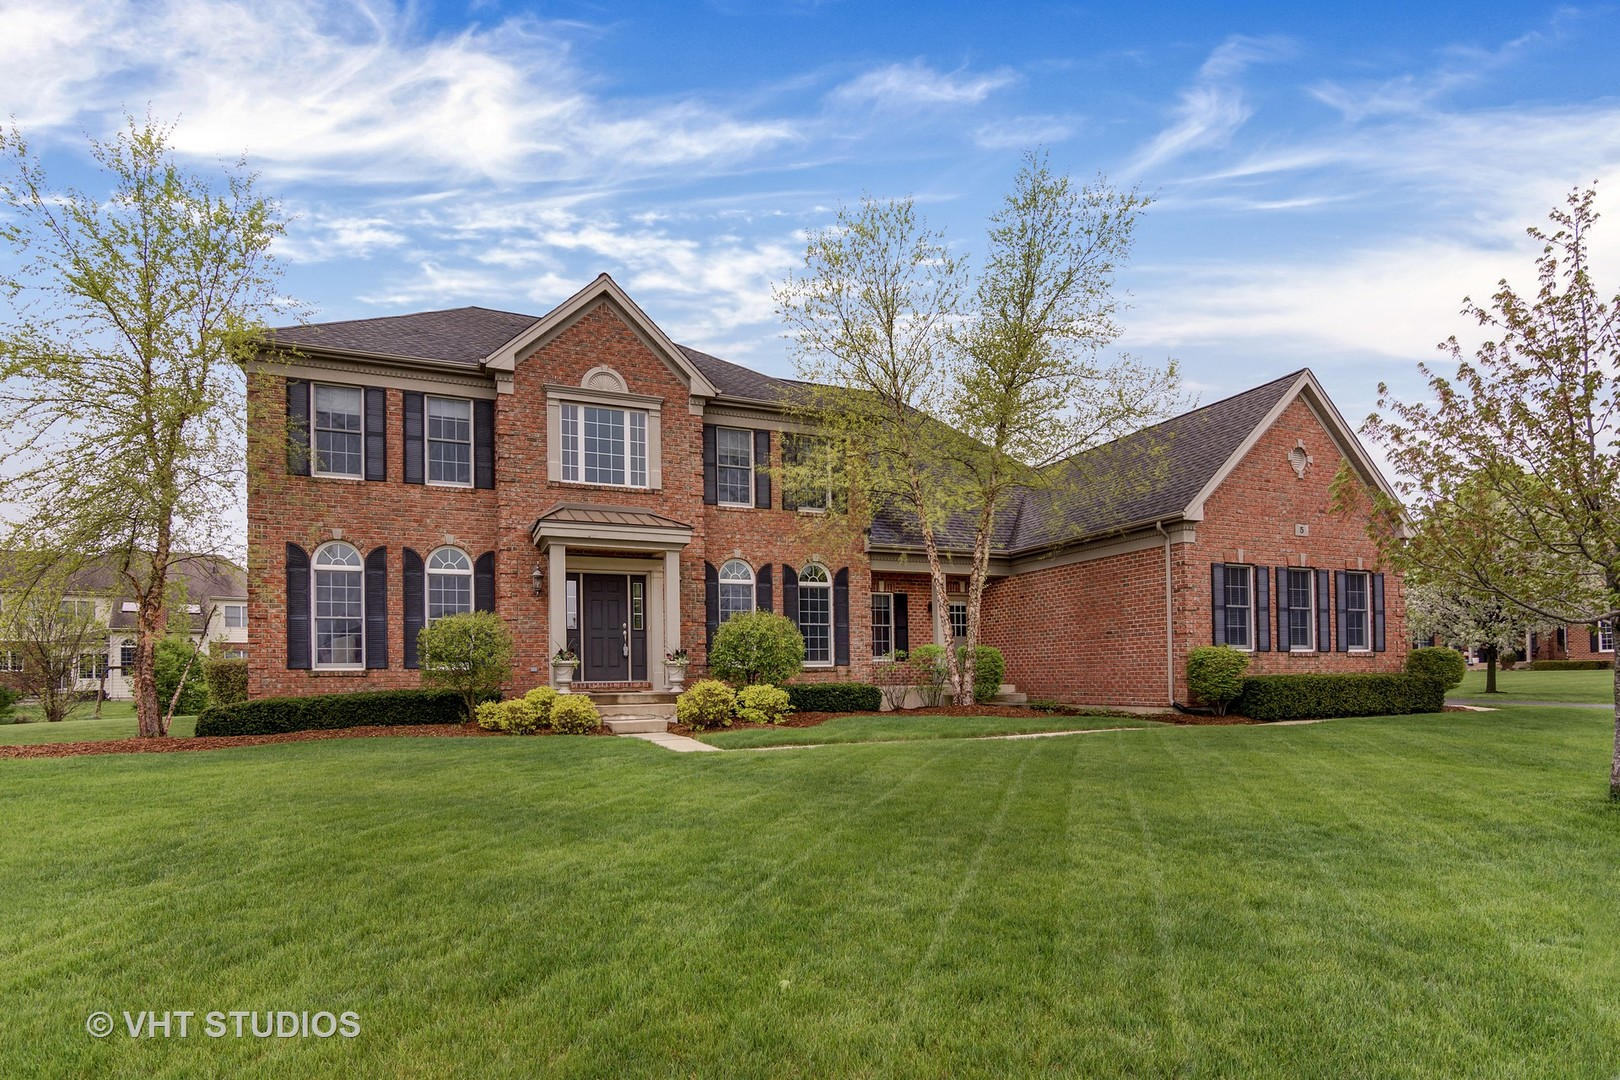 5 Turnbury Court, Hawthorn Woods, Illinois 60047